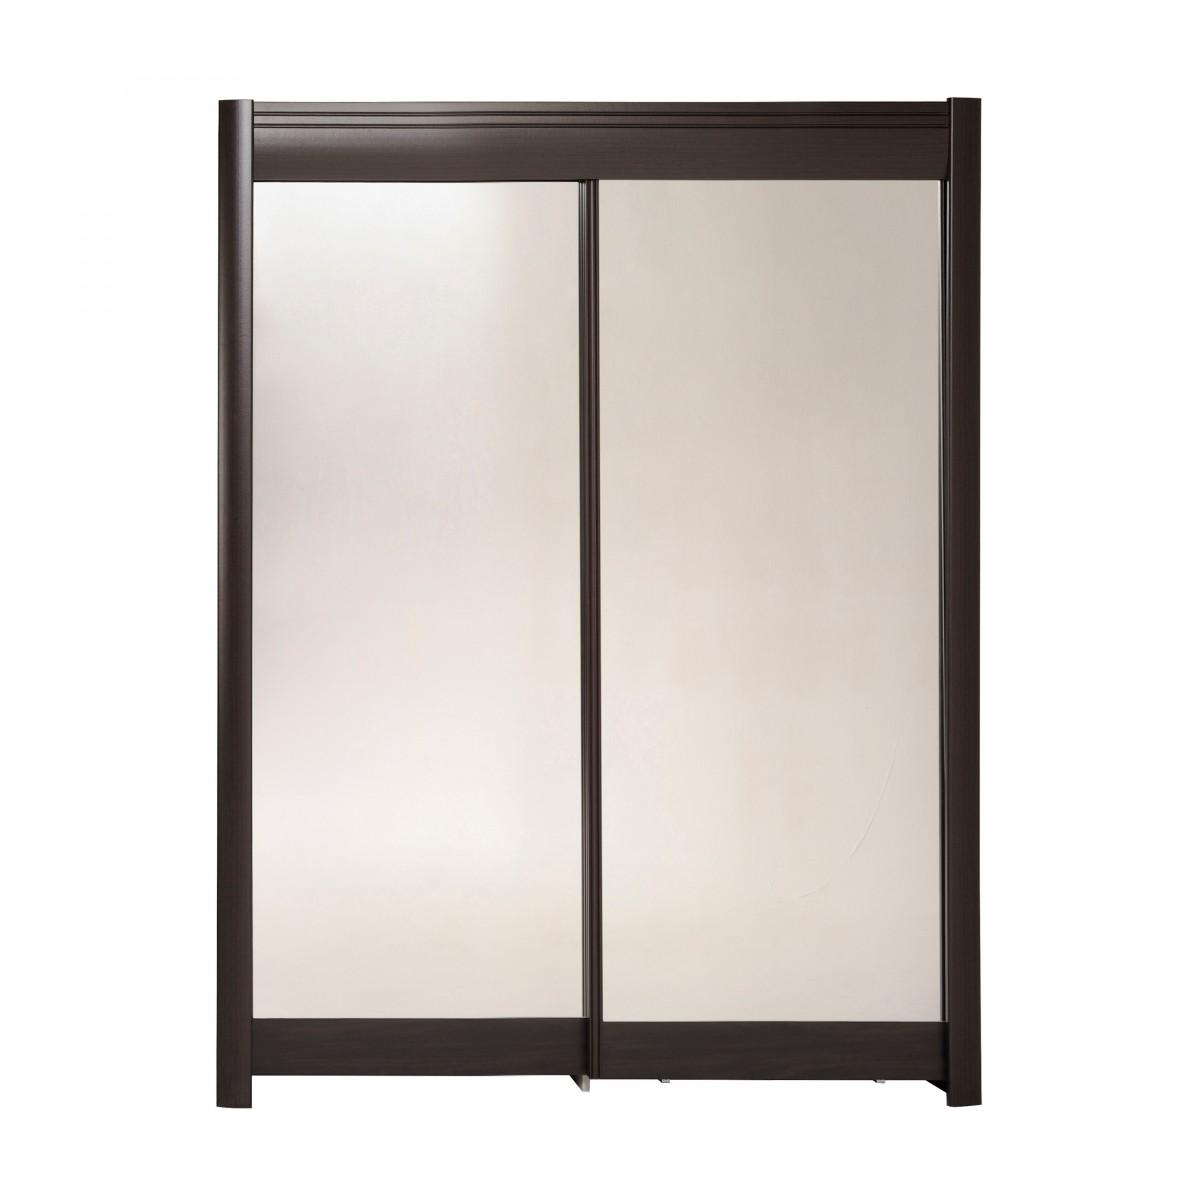 Someo armoire 2 portes coulissantes bois caf miroir 157 - Armoire dressing portes coulissantes miroir ...